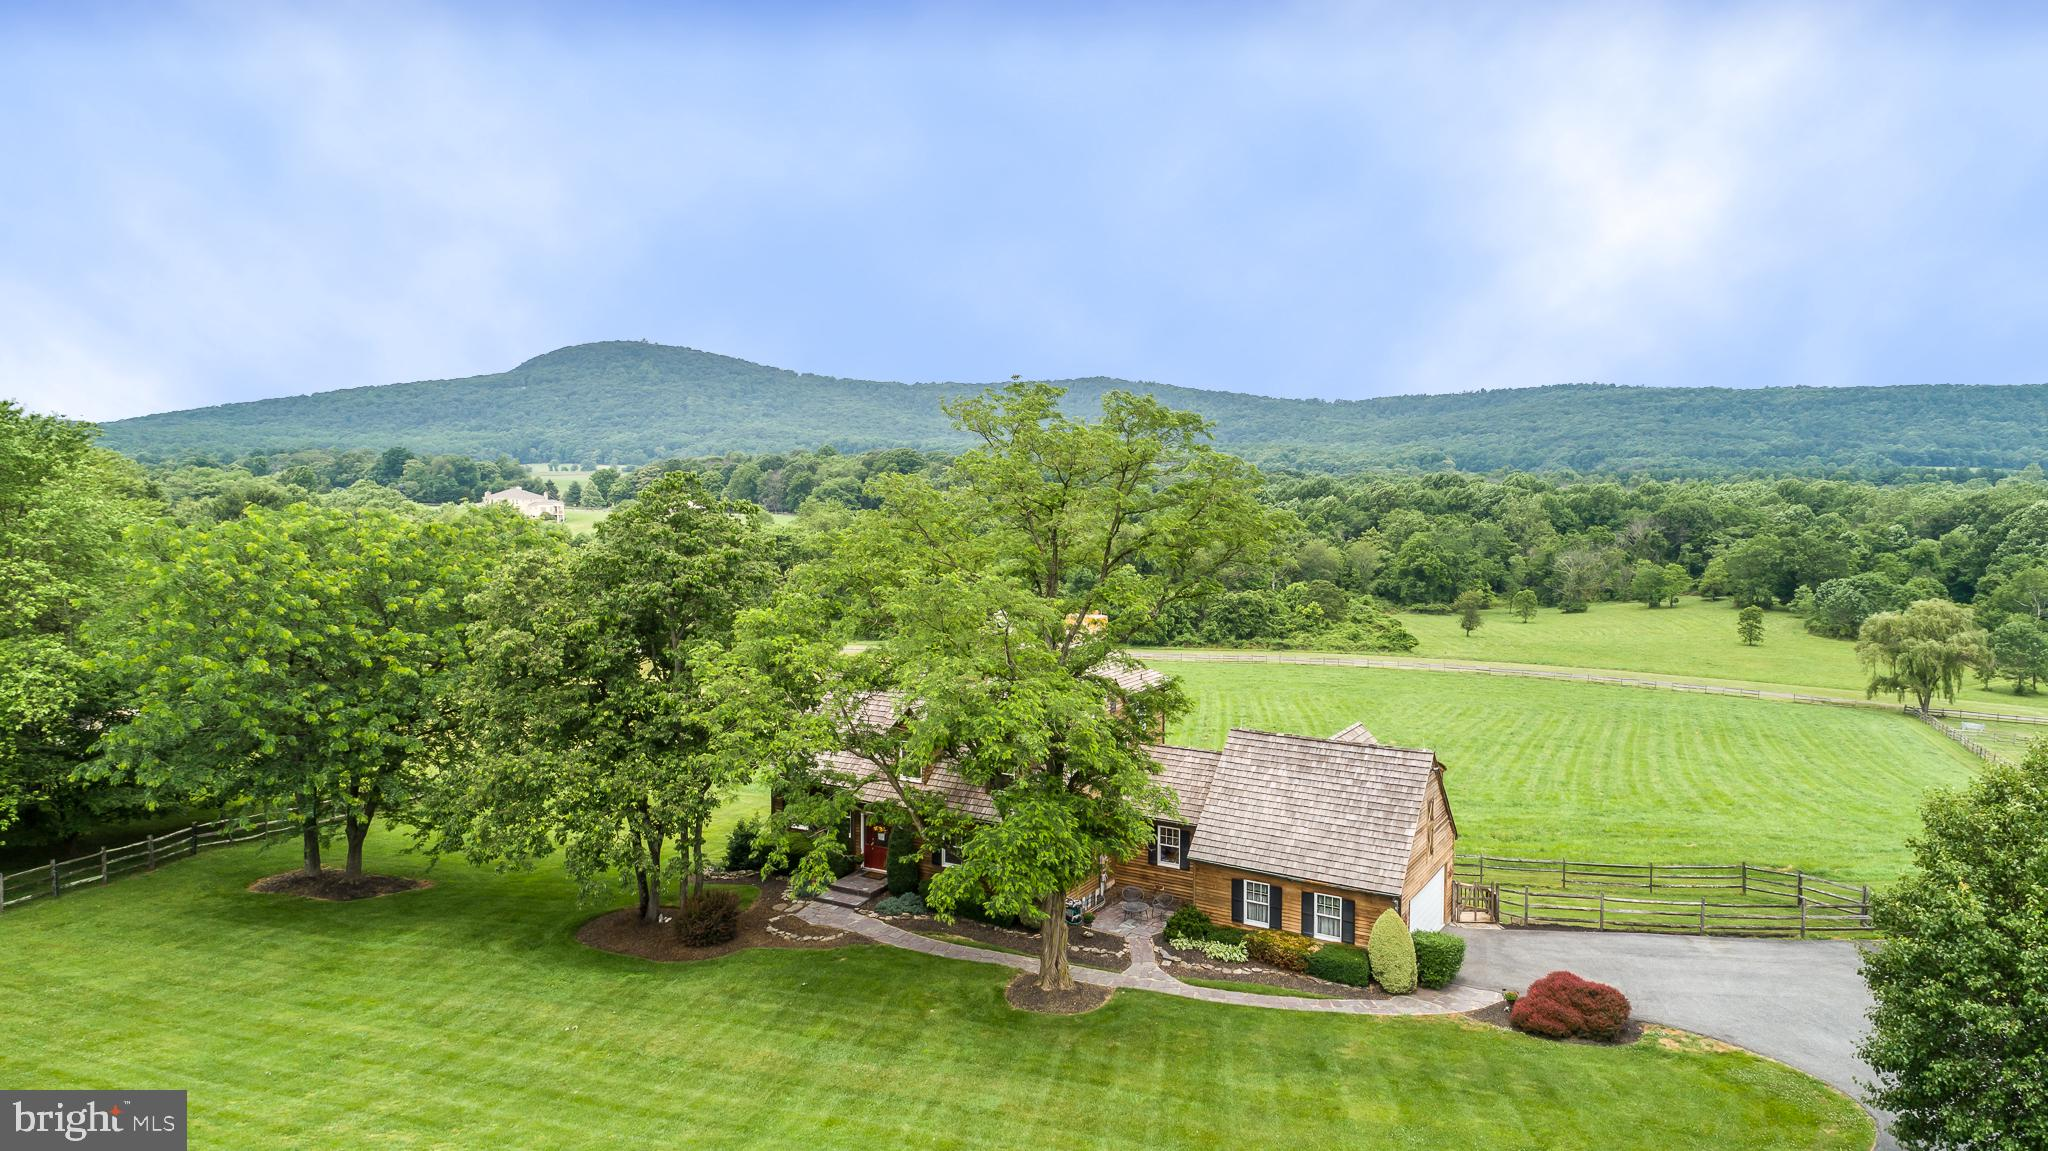 17411 RYEFIELD COURT, DICKERSON, MD 20842